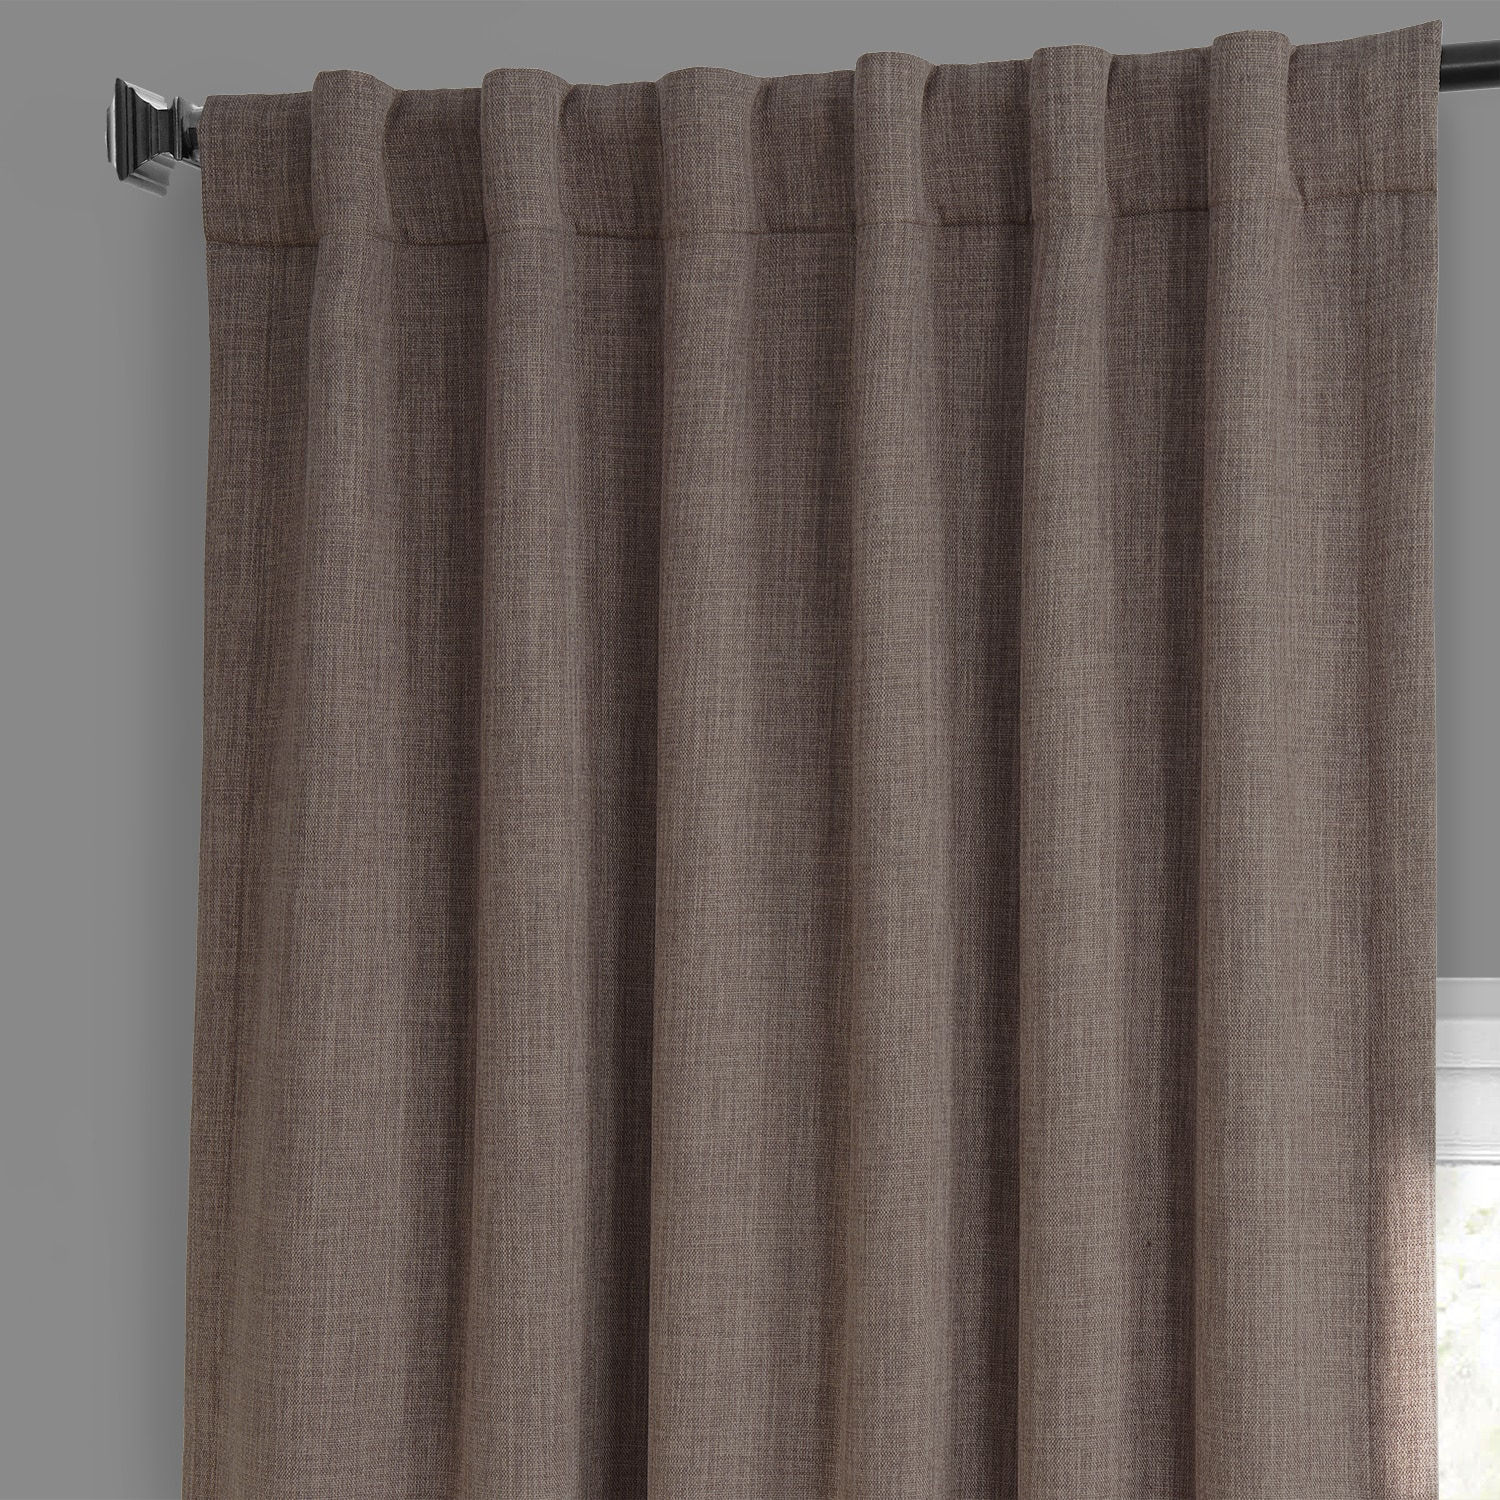 Dutch Cocoa Faux Linen Blackout Room Darkening Curtain